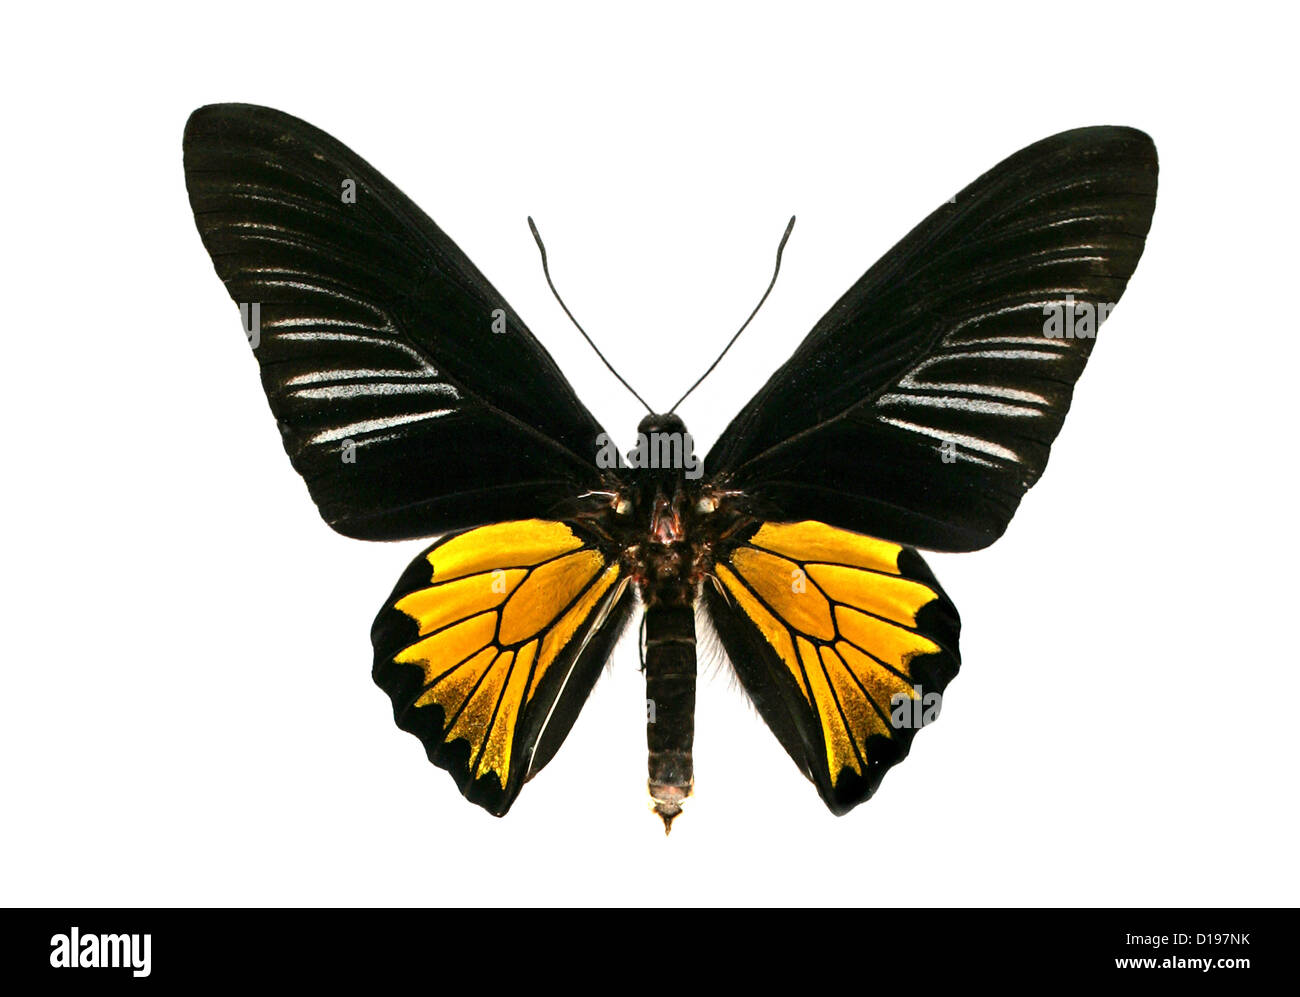 Common Birdwing Butterfly, Troides helena cerberus, Papilionidae, Lepidoptera. India and Asia. Male. - Stock Image